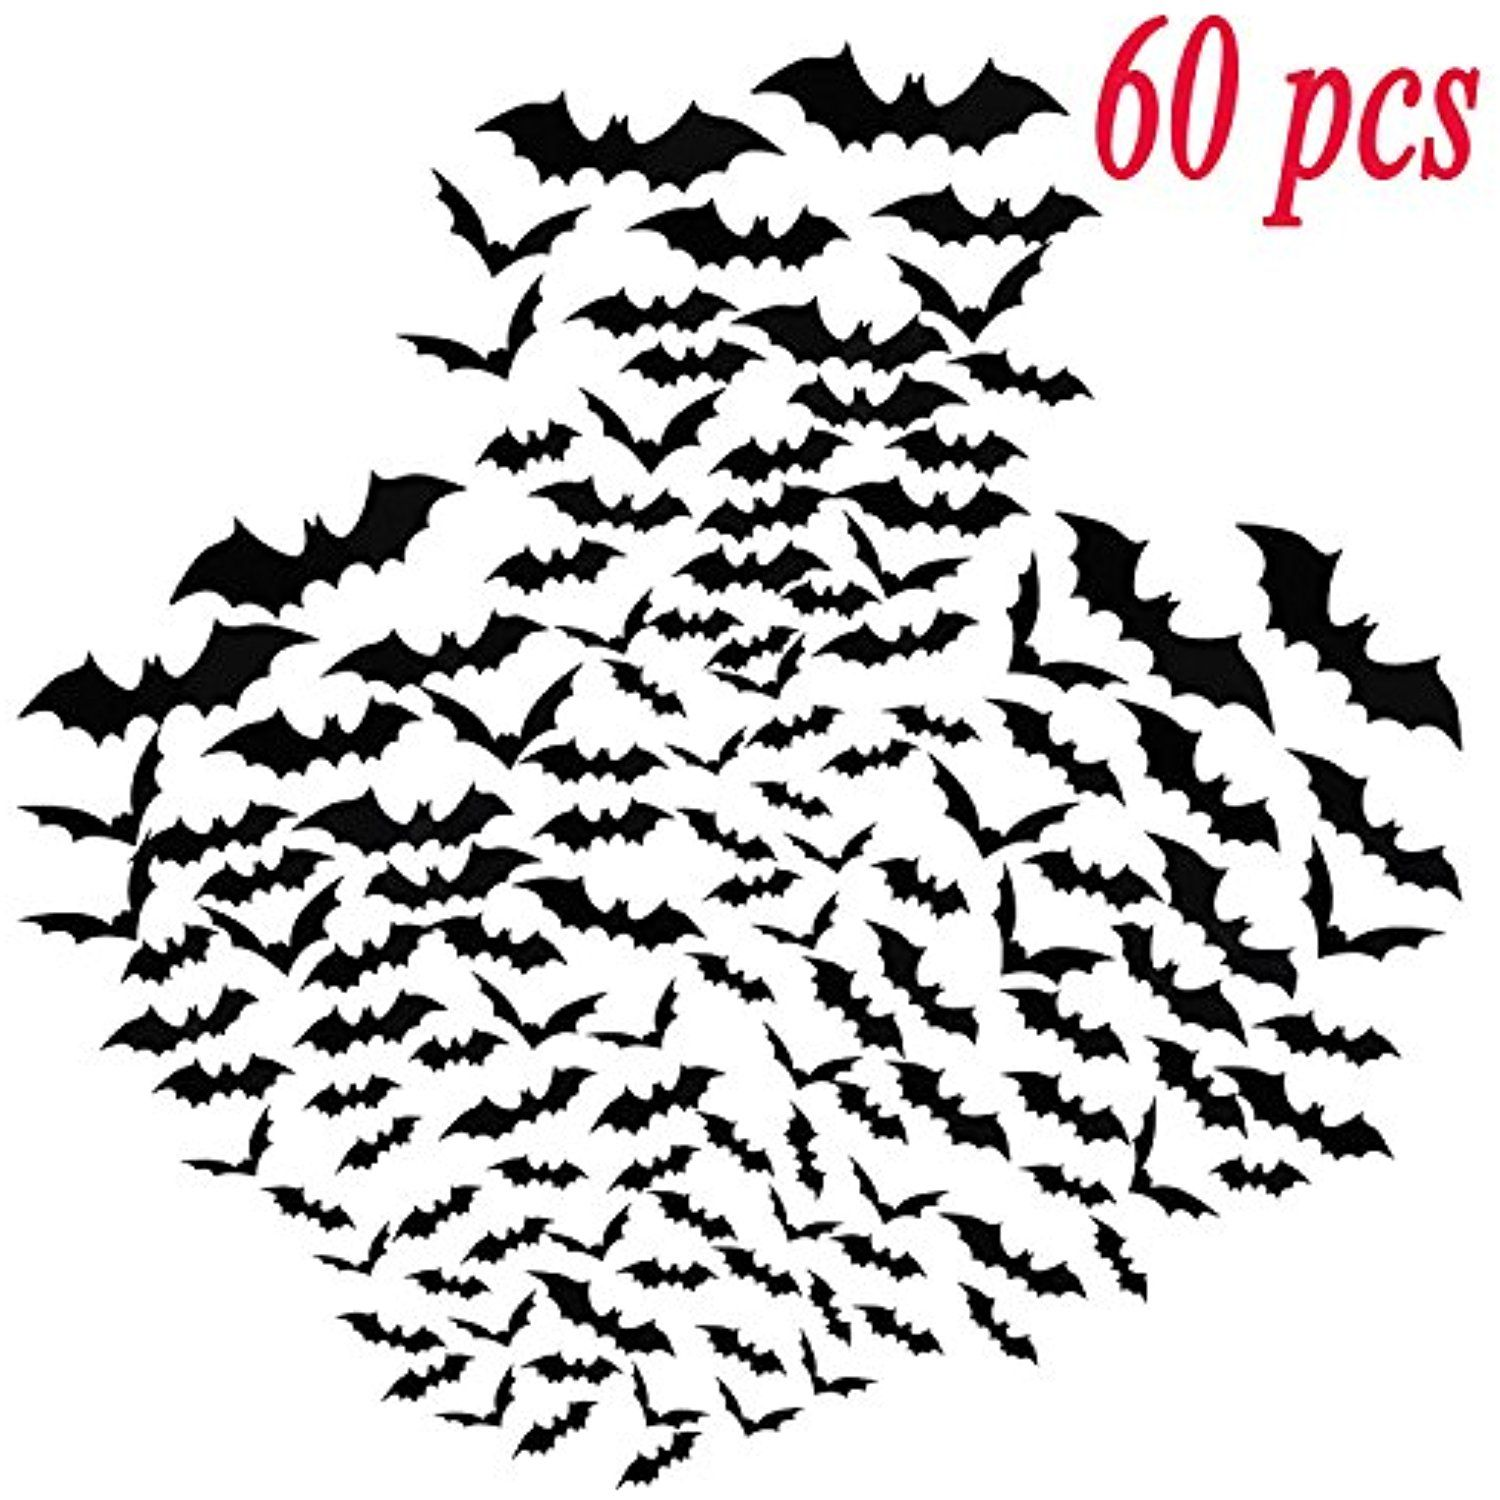 Window decor stickers   pcs d bats stickers halloween wall decoration window decor scary